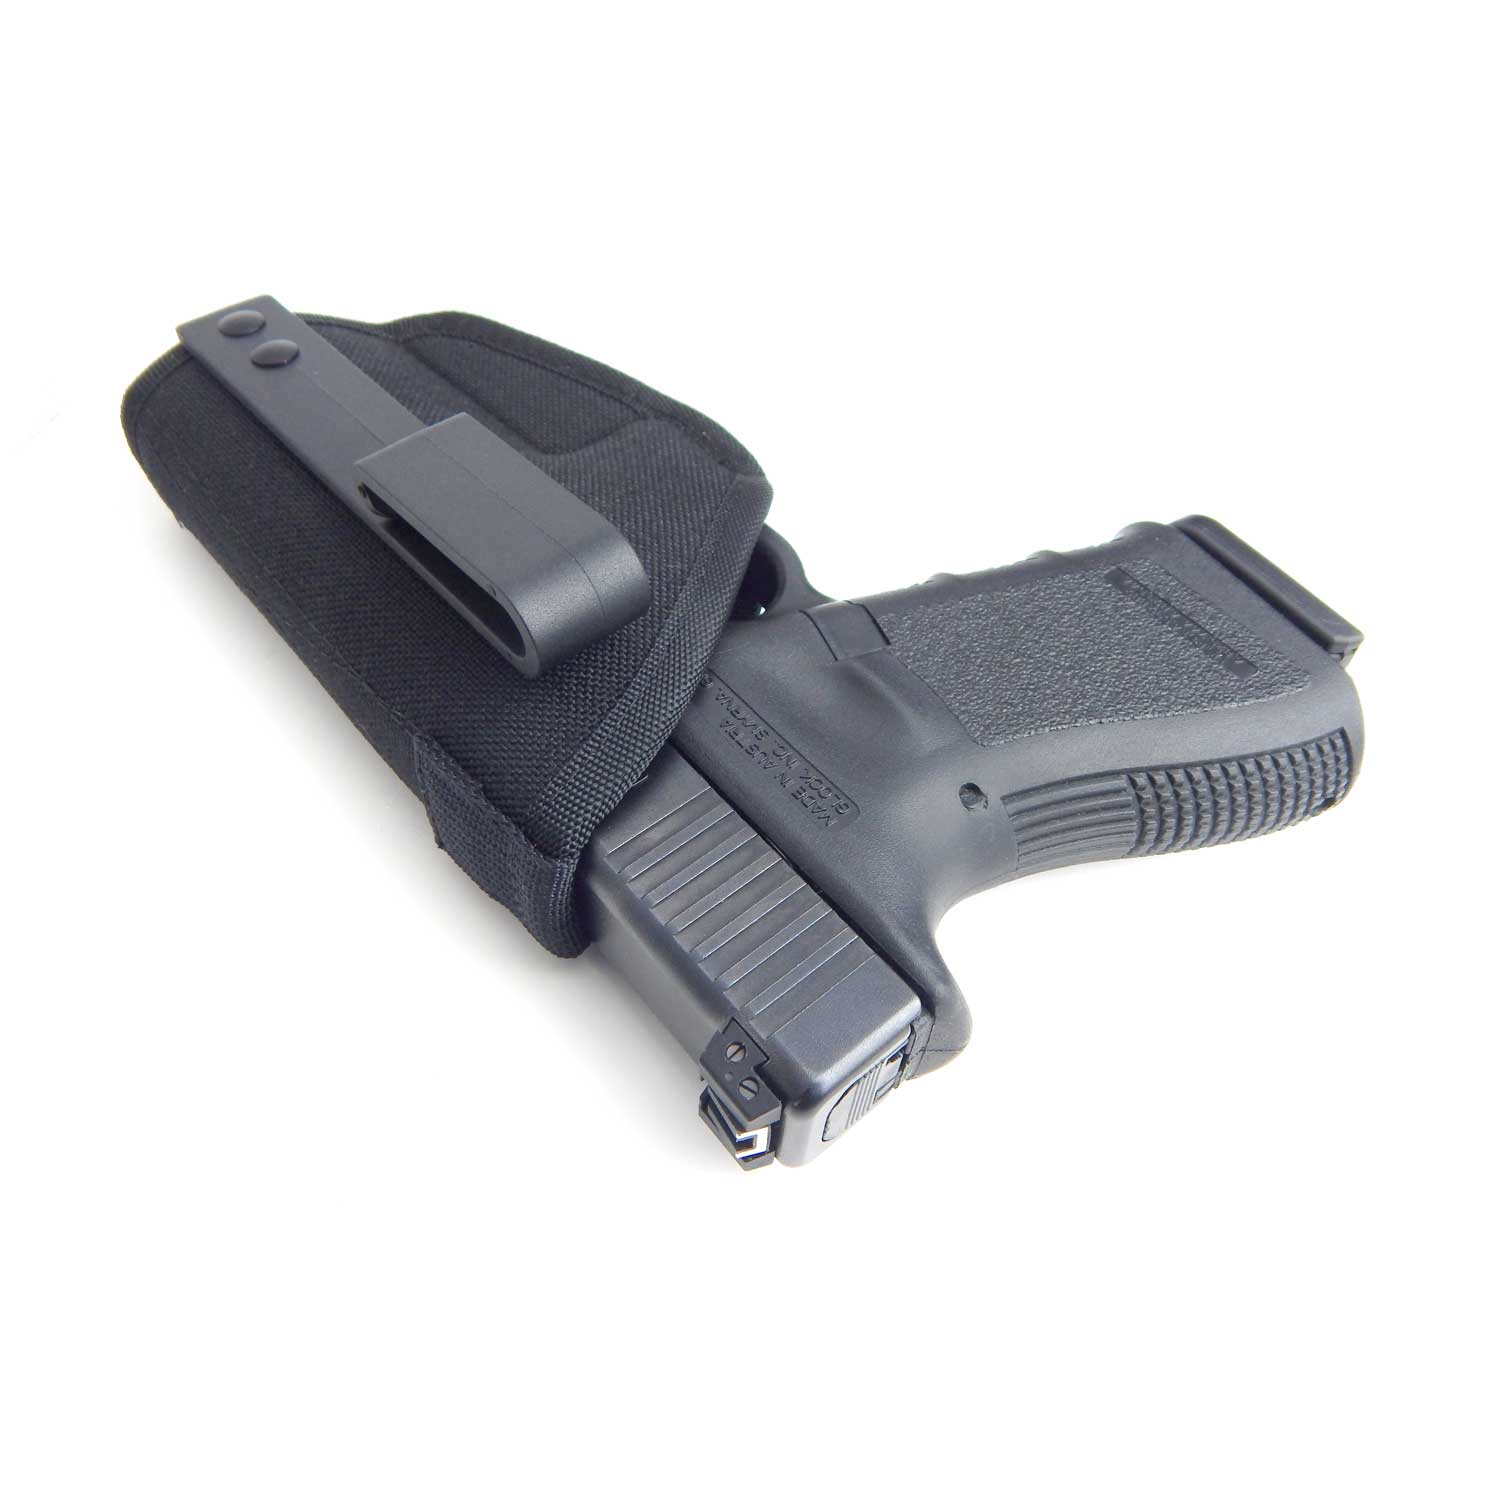 IWB Clip Tuckable Concealment Holster for concealed carry